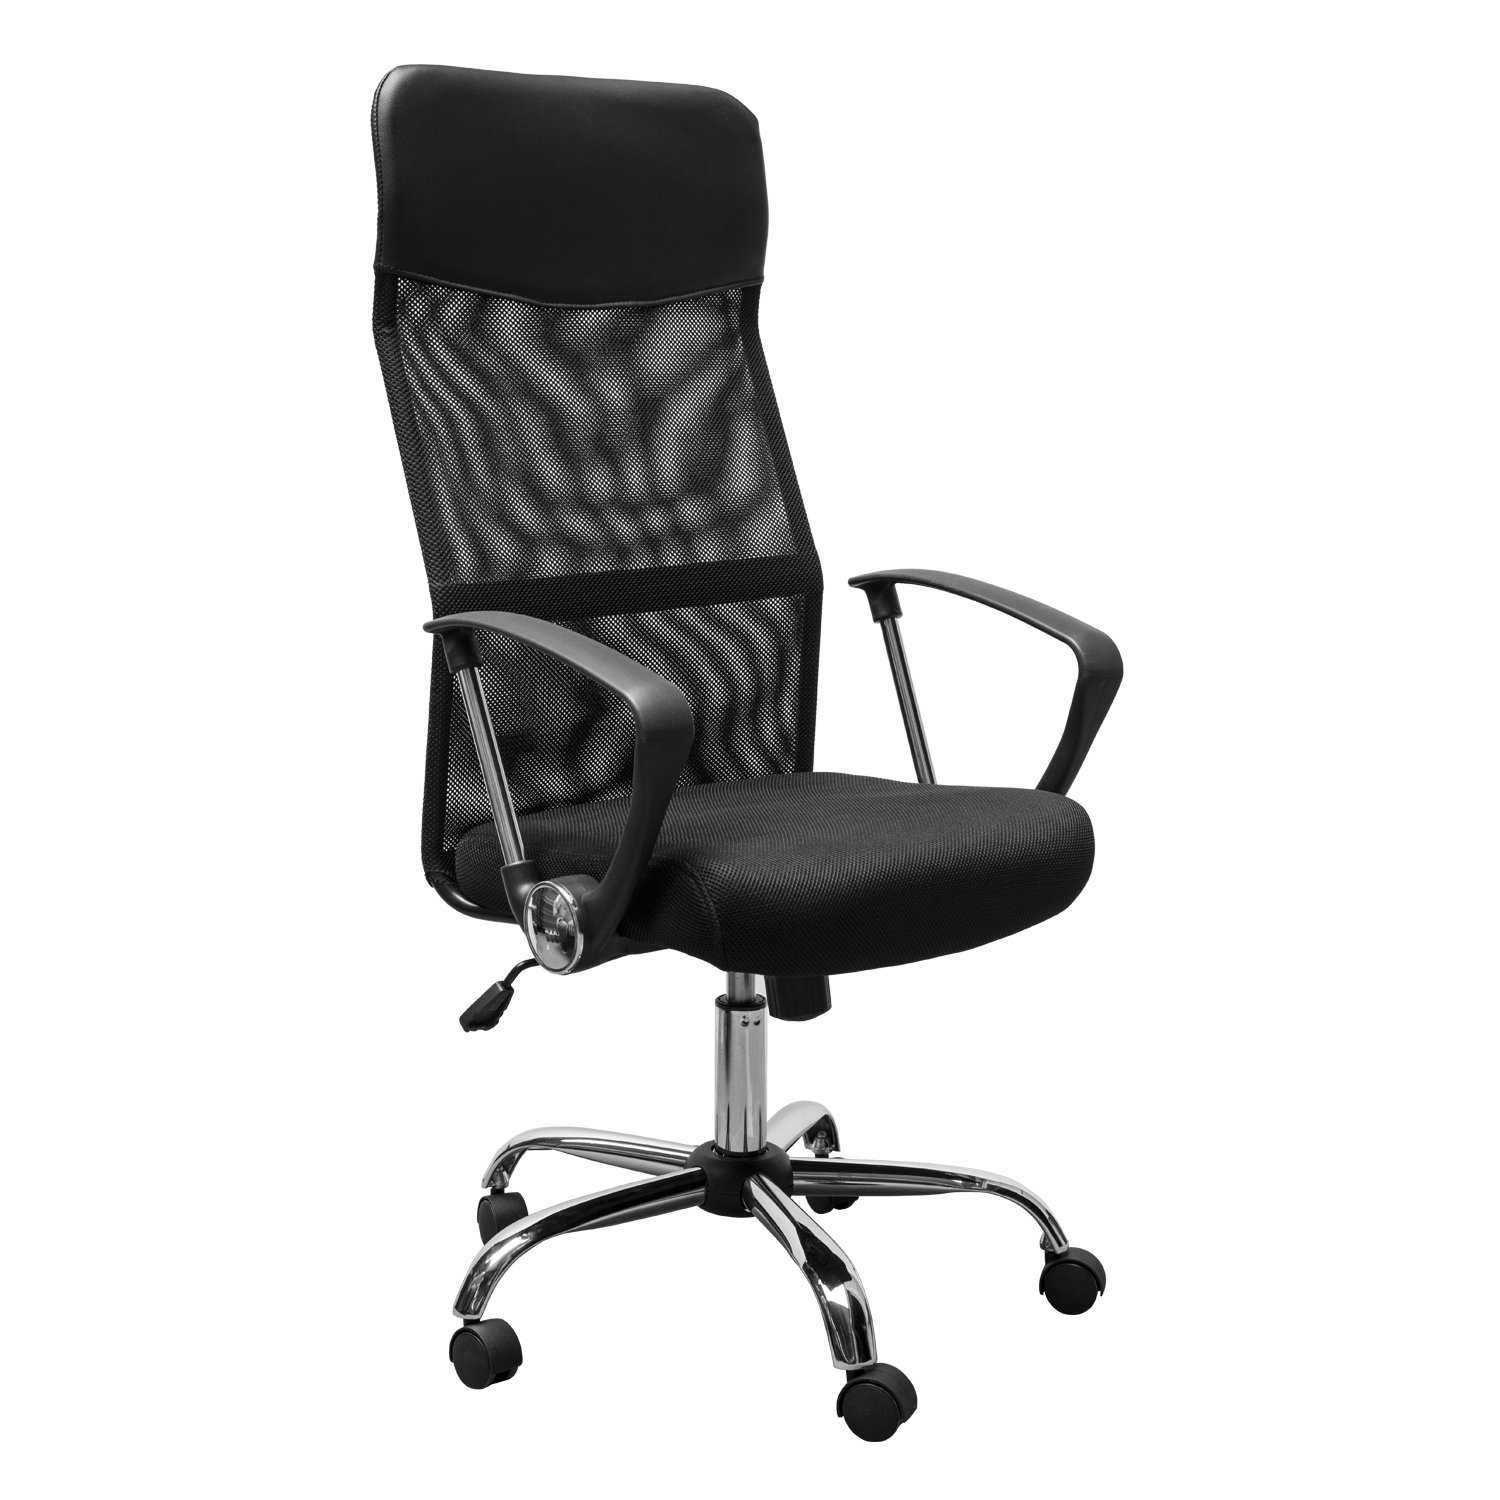 Homcom Swivel